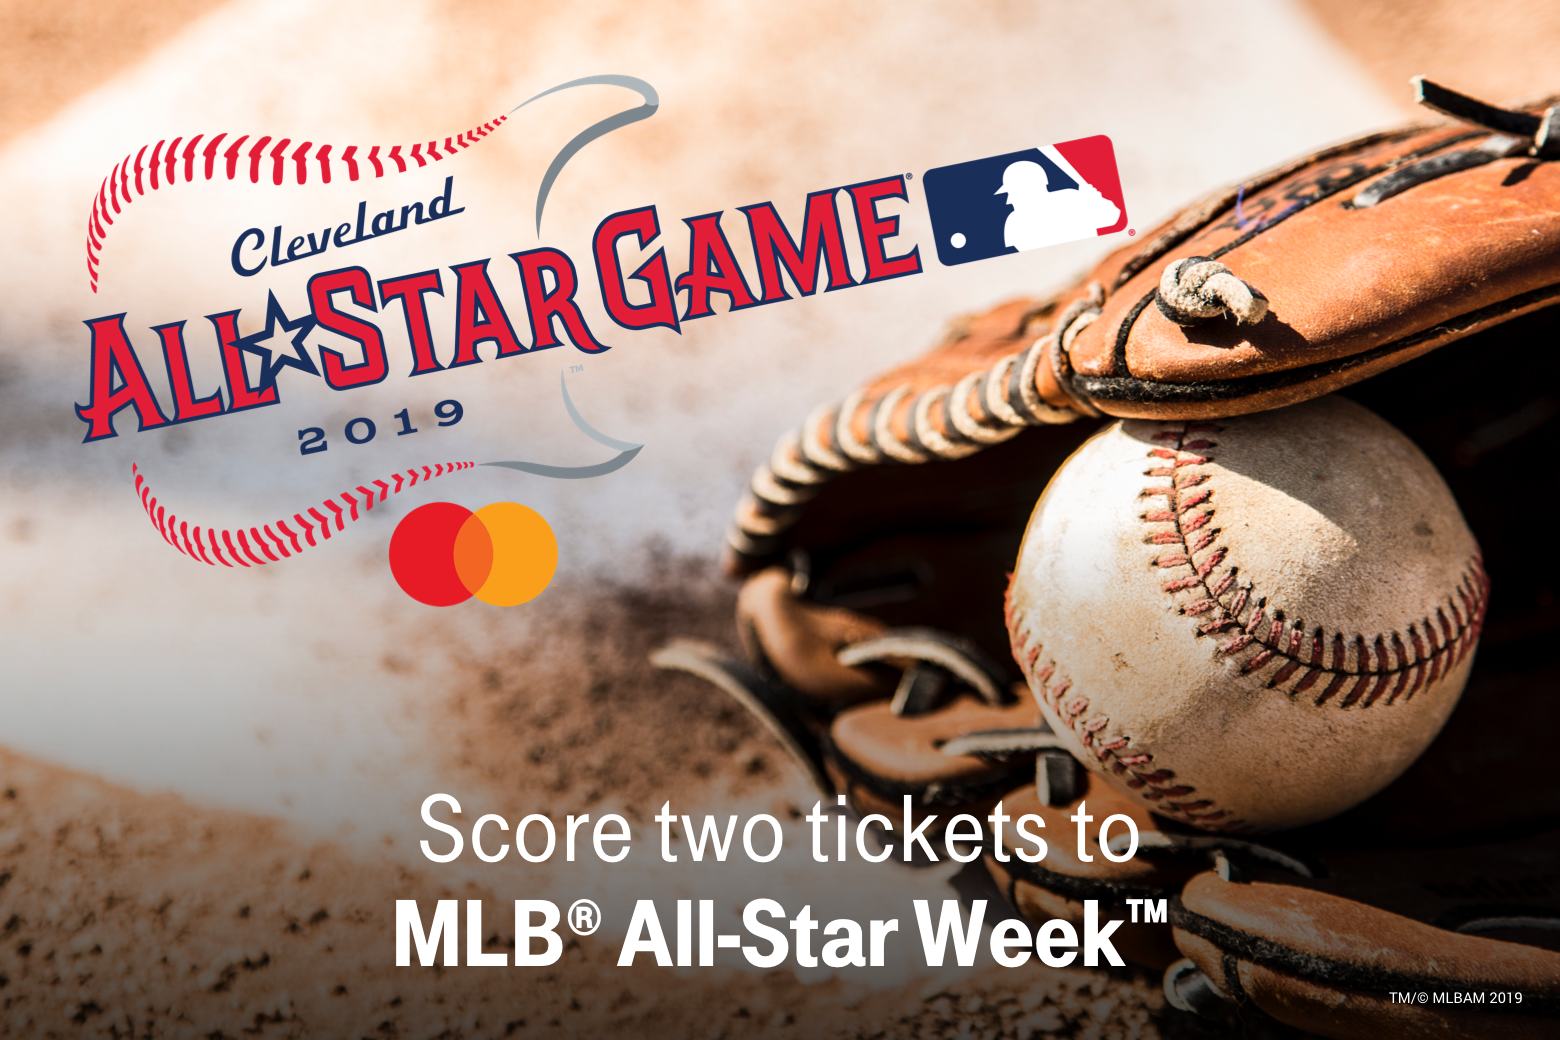 Cleveland All-Star Game 2019. Score two tickets to MLB® All-Star Week™